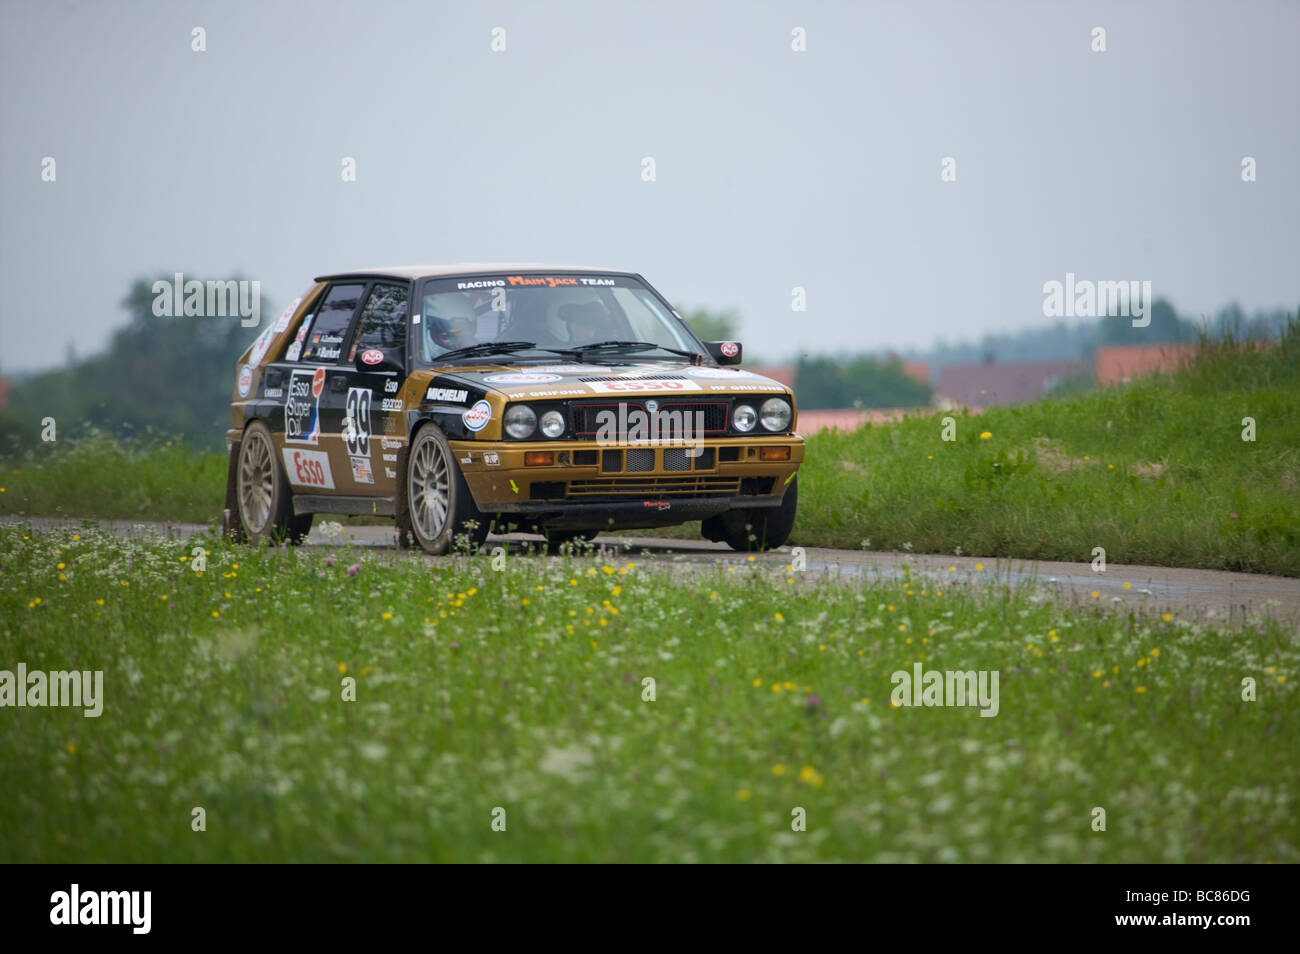 Lancia Delta at the AvD Rallye Baden-Württemberg 2009 - Stock Image